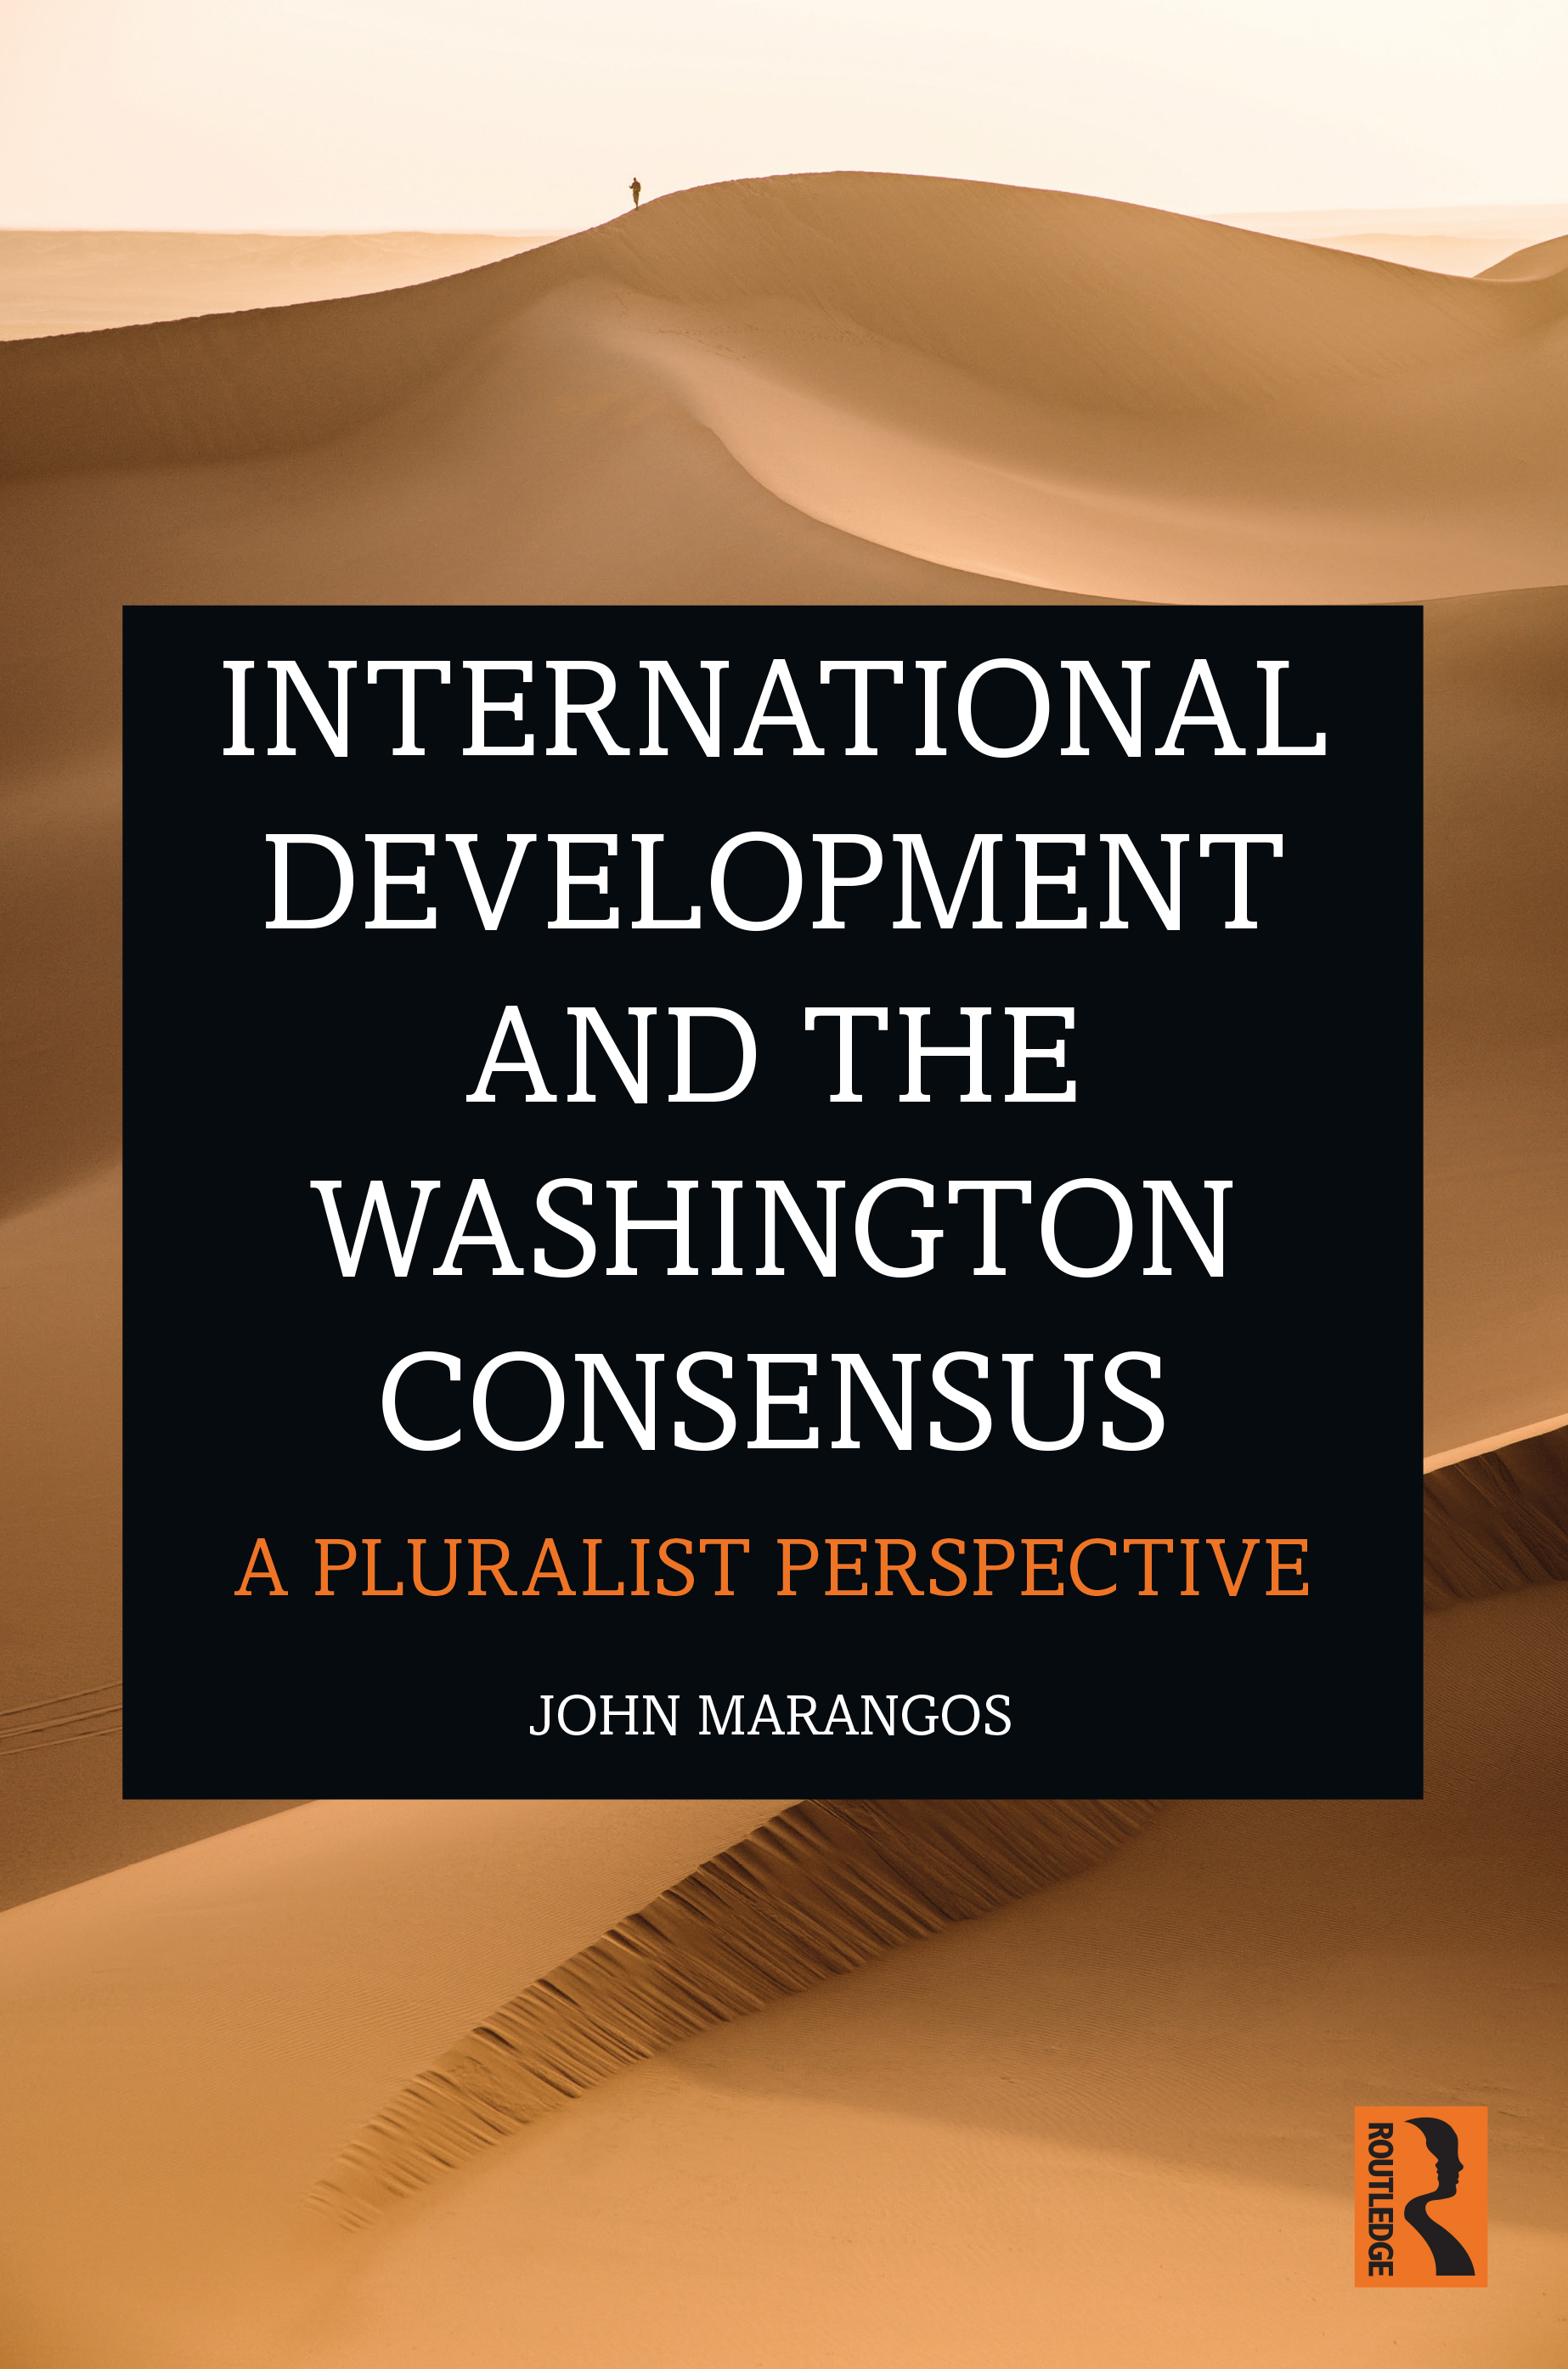 International Development and the Washington Consensus: A Pluralist Perspective book cover